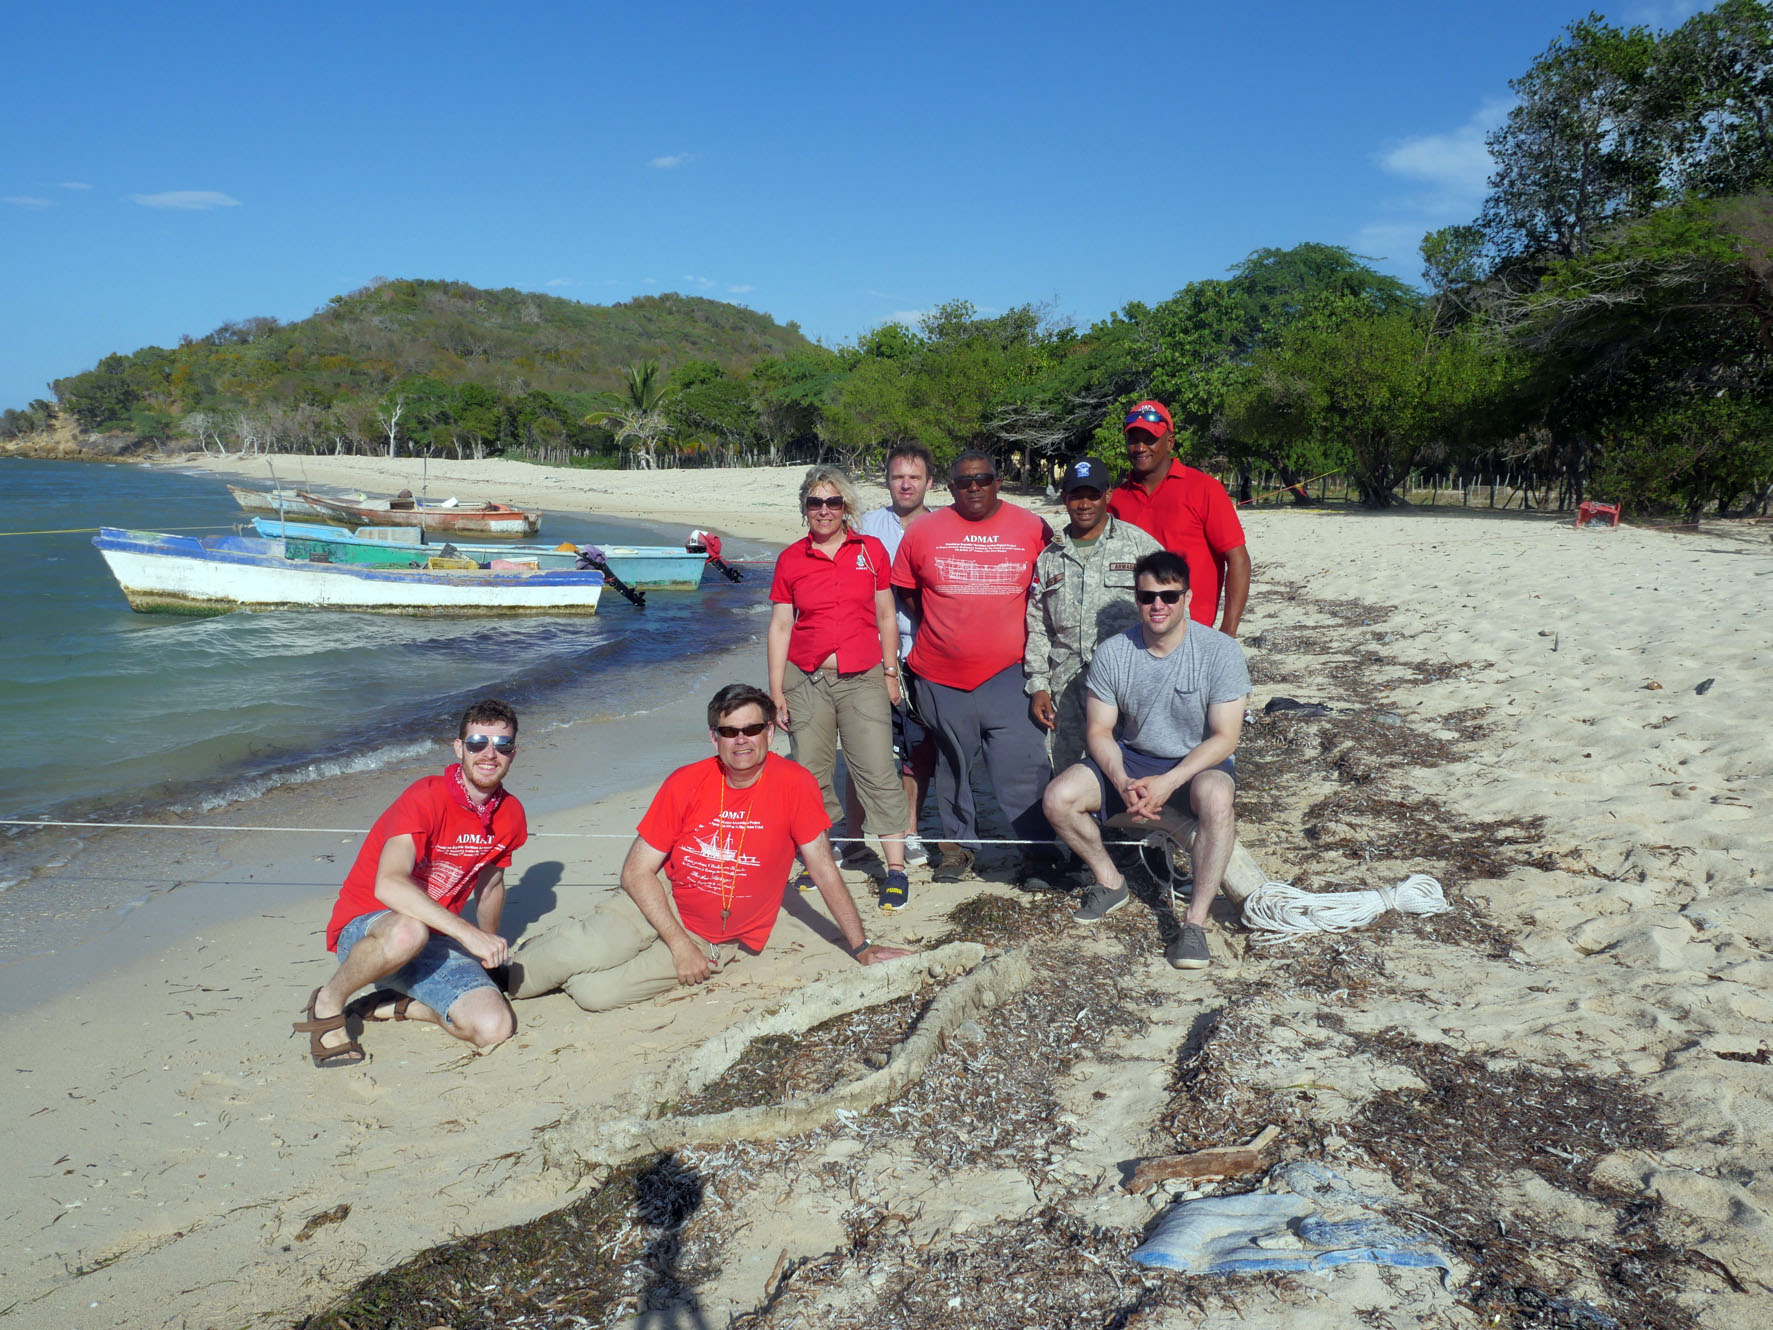 Some of the   Le Dragon   Team with a gudgeon which had broken into two seperate pieces. From Left to Right:, Connor Grzesiak, Dr Simon Spooner, Florence Prudhomme, Louis Desvernay, Rami, Lt Venture, Sandy and Steven Frehn.